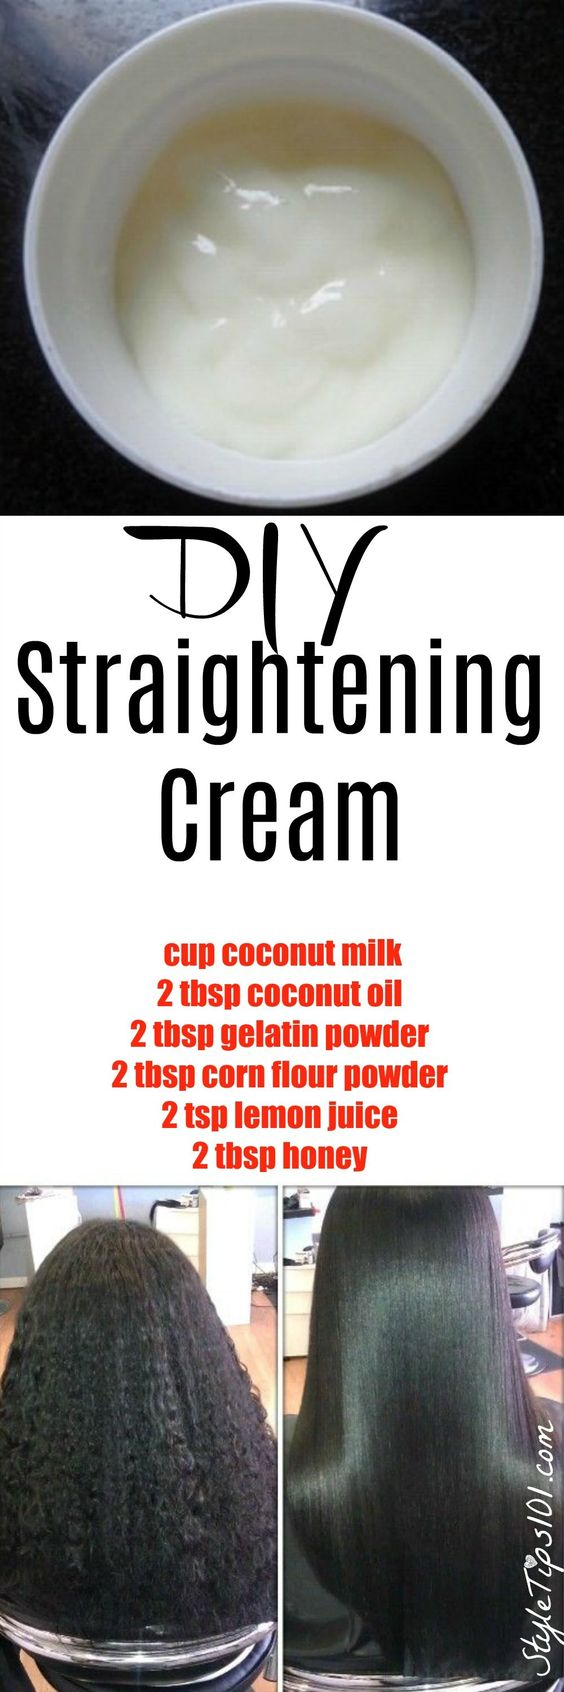 DIY Hair Straightening Cream: